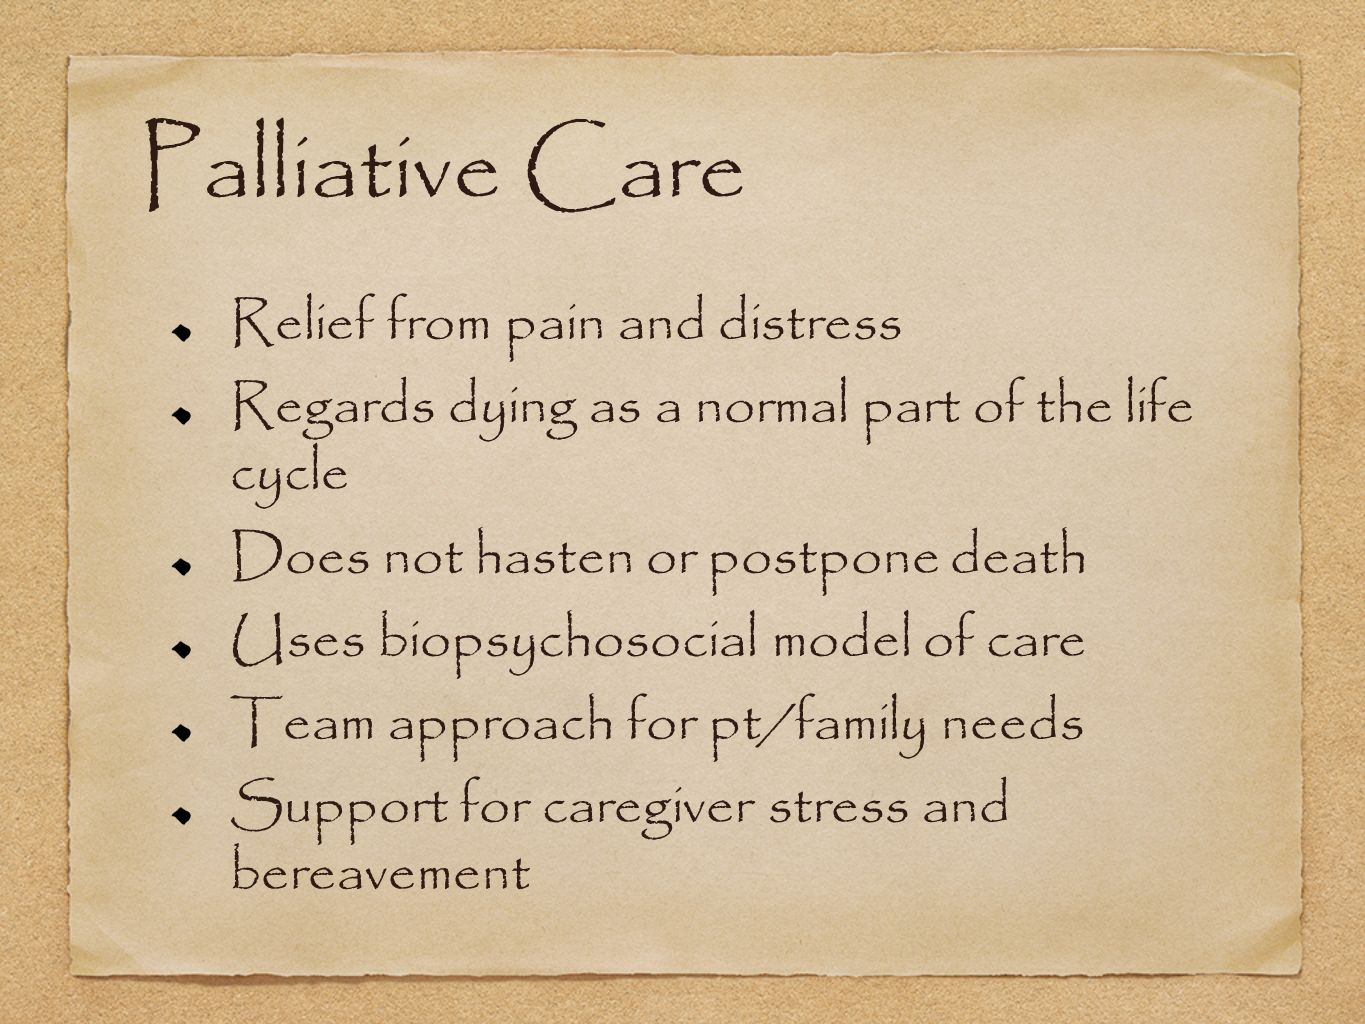 Palliative Care Relief From Pain And Distress